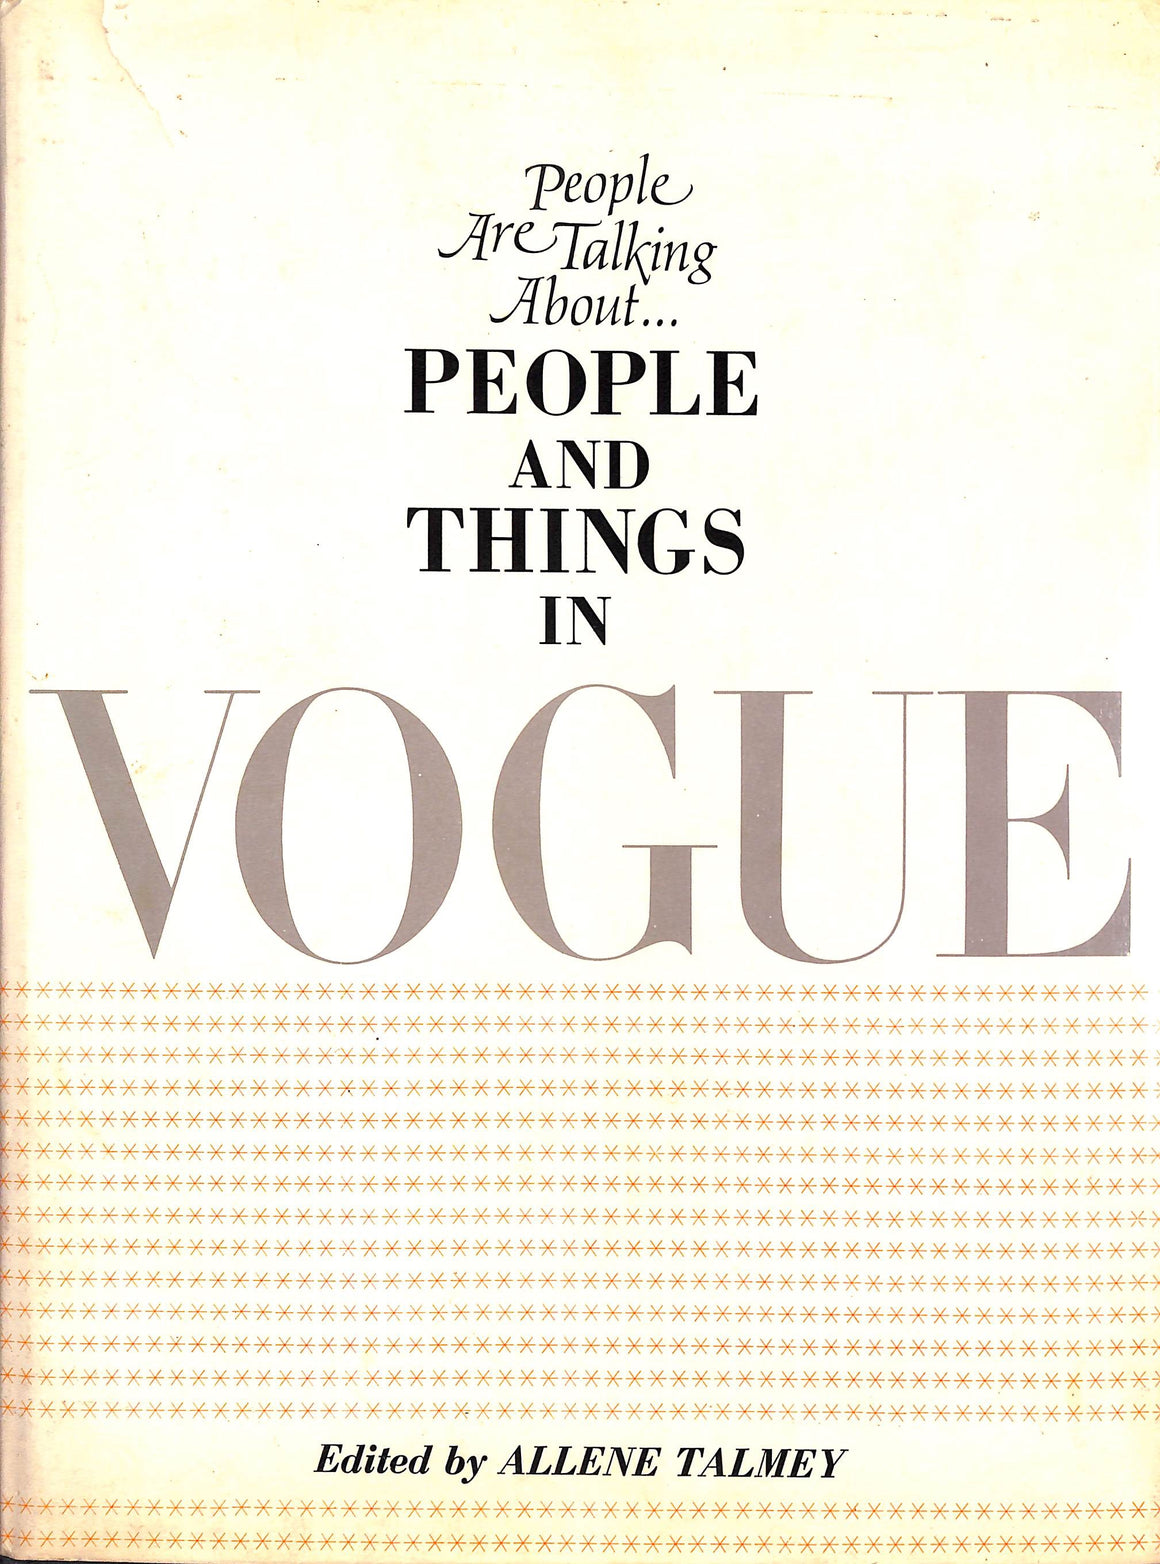 People Are Talking About People and Things in Vogue by Allene Talmey